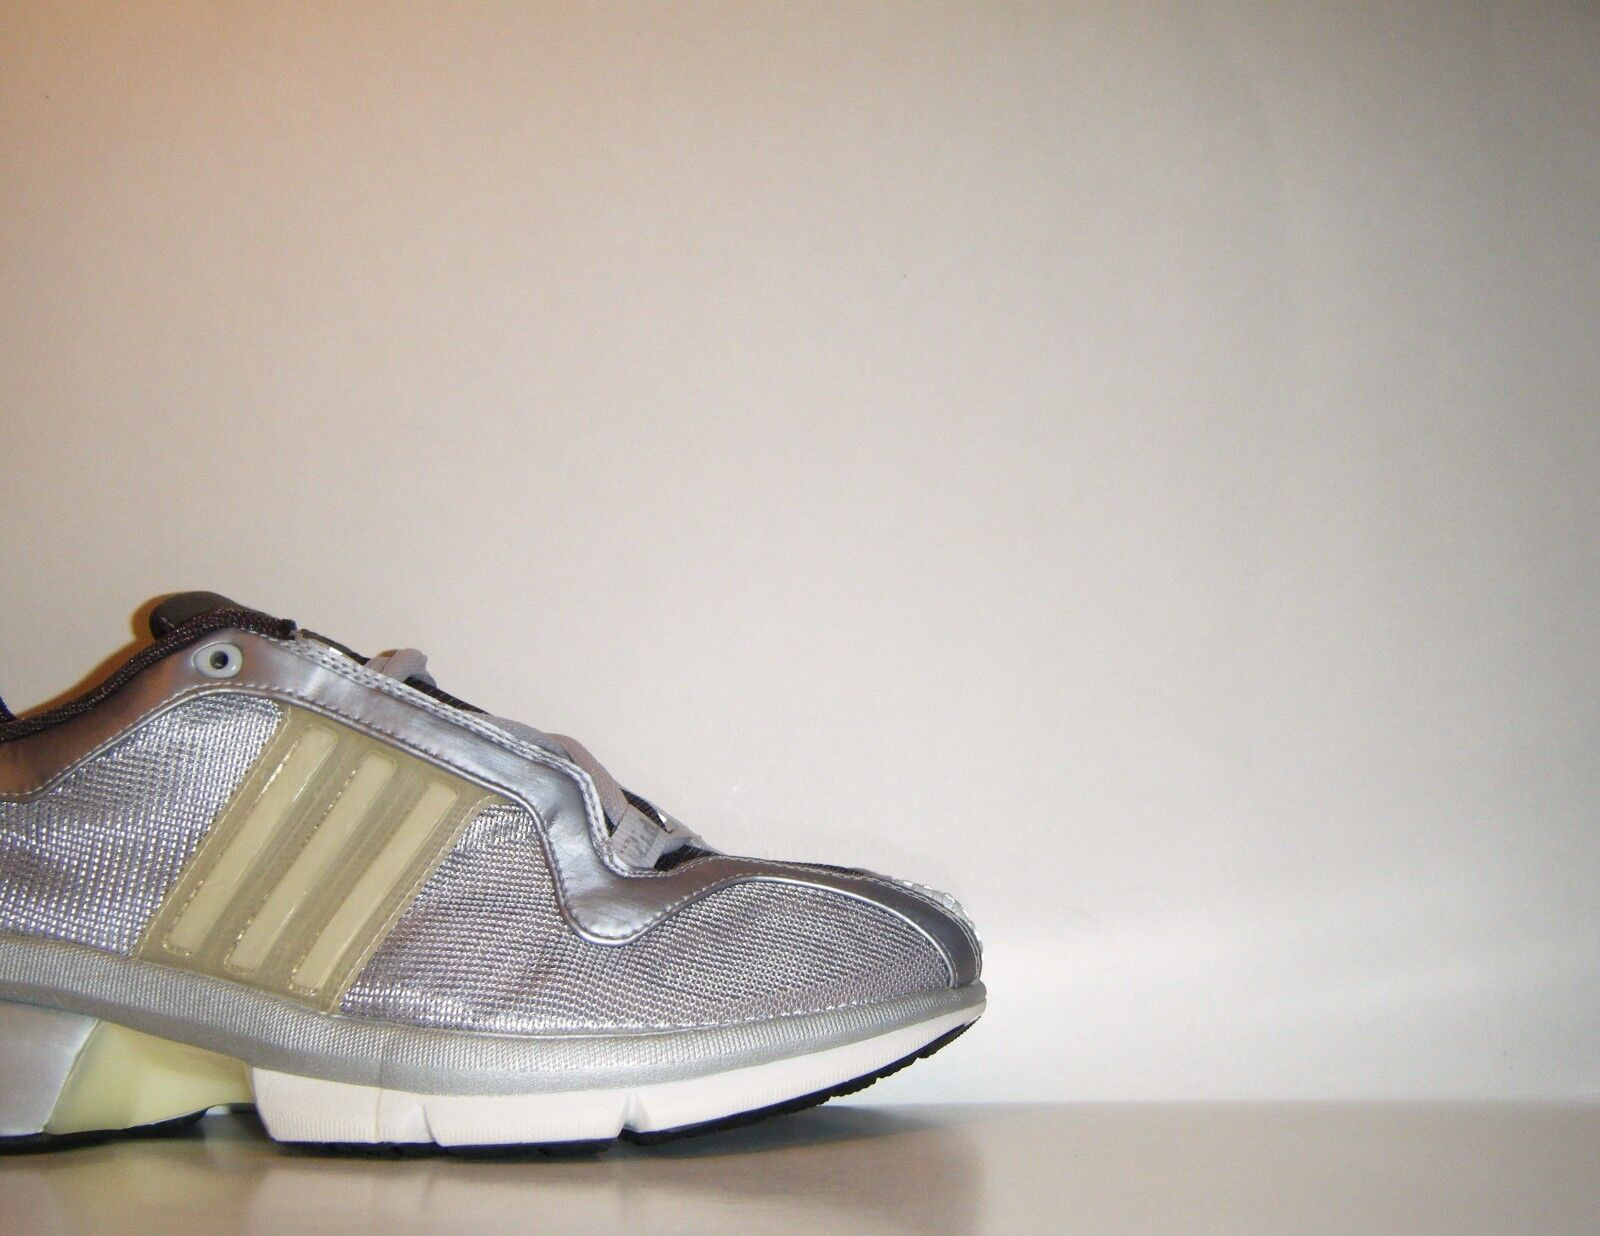 De Colección og 2001 Adidas Climacool Ride A3 EQT MICROPACER muestra Boost Y3 NMD